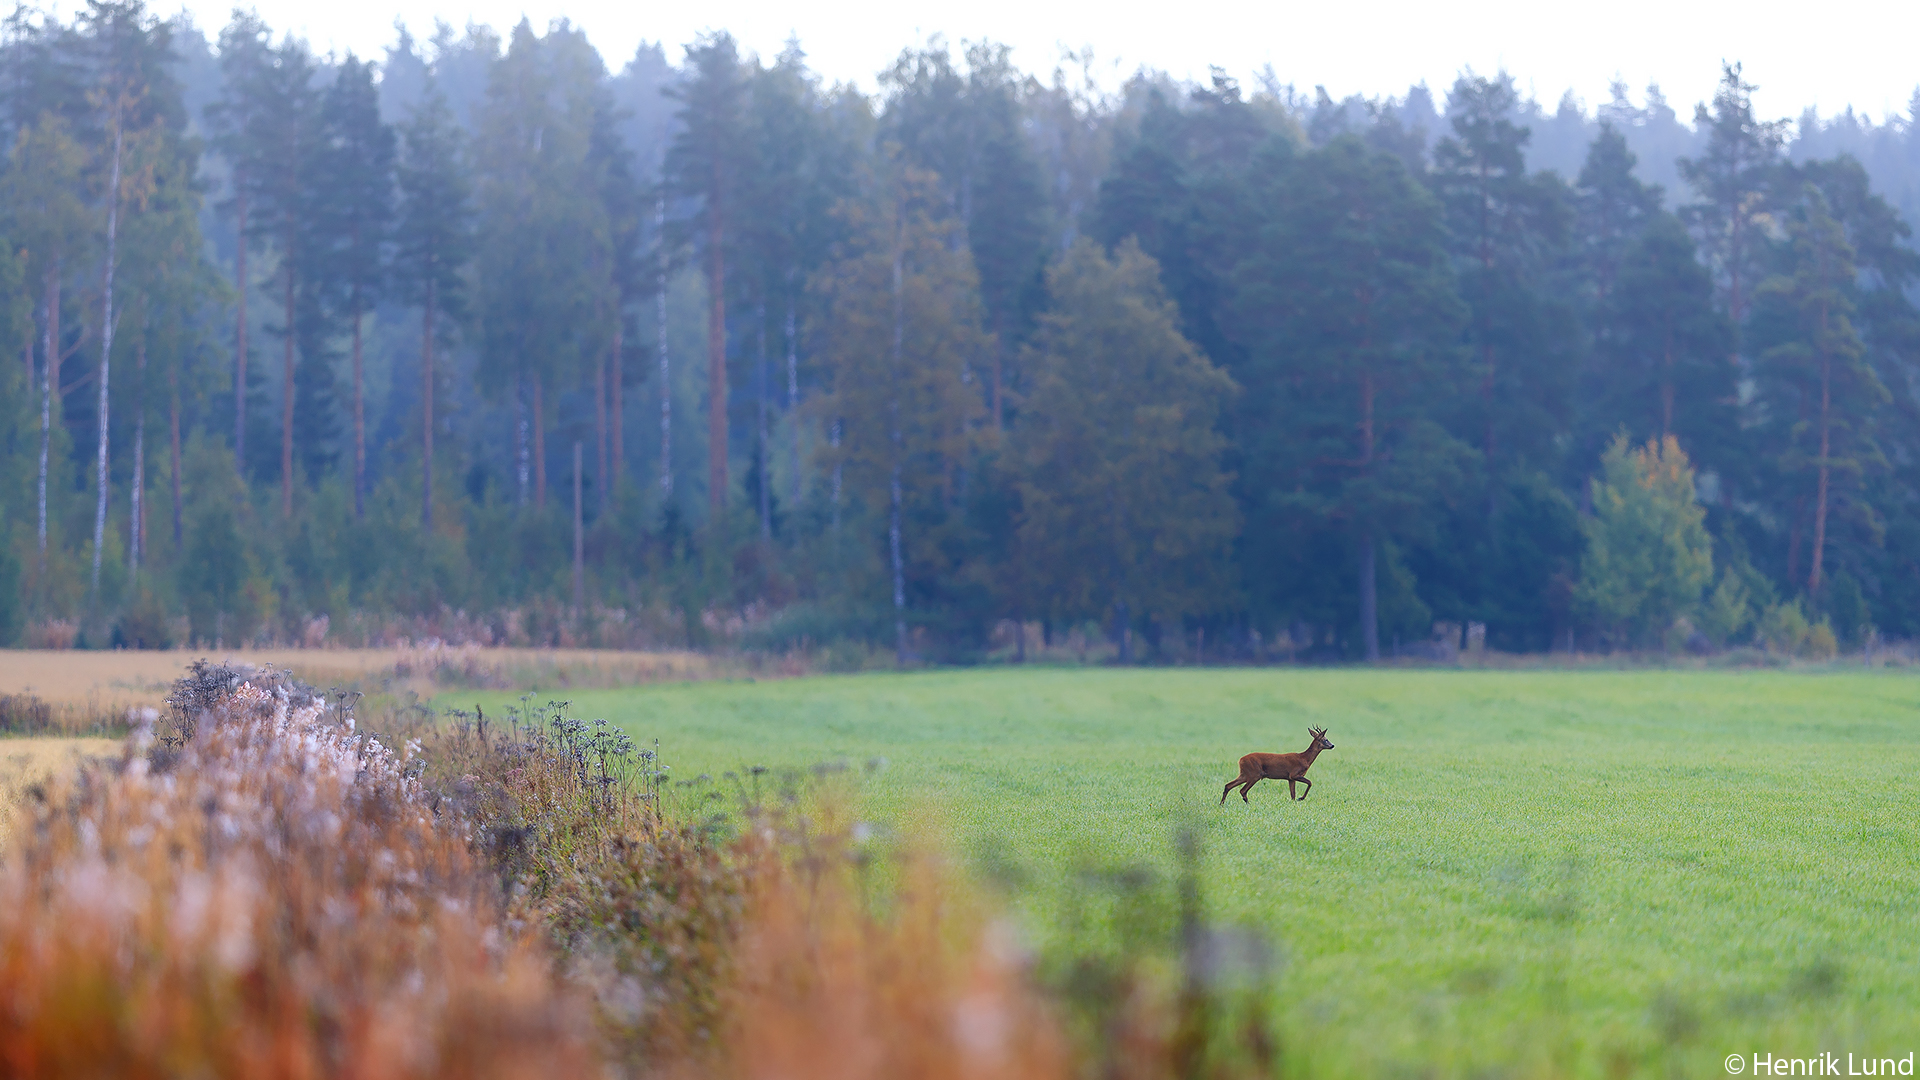 Roedeer crossing the fields in the morning. Lindkoski, Lappträsk, Finland. September 2017.